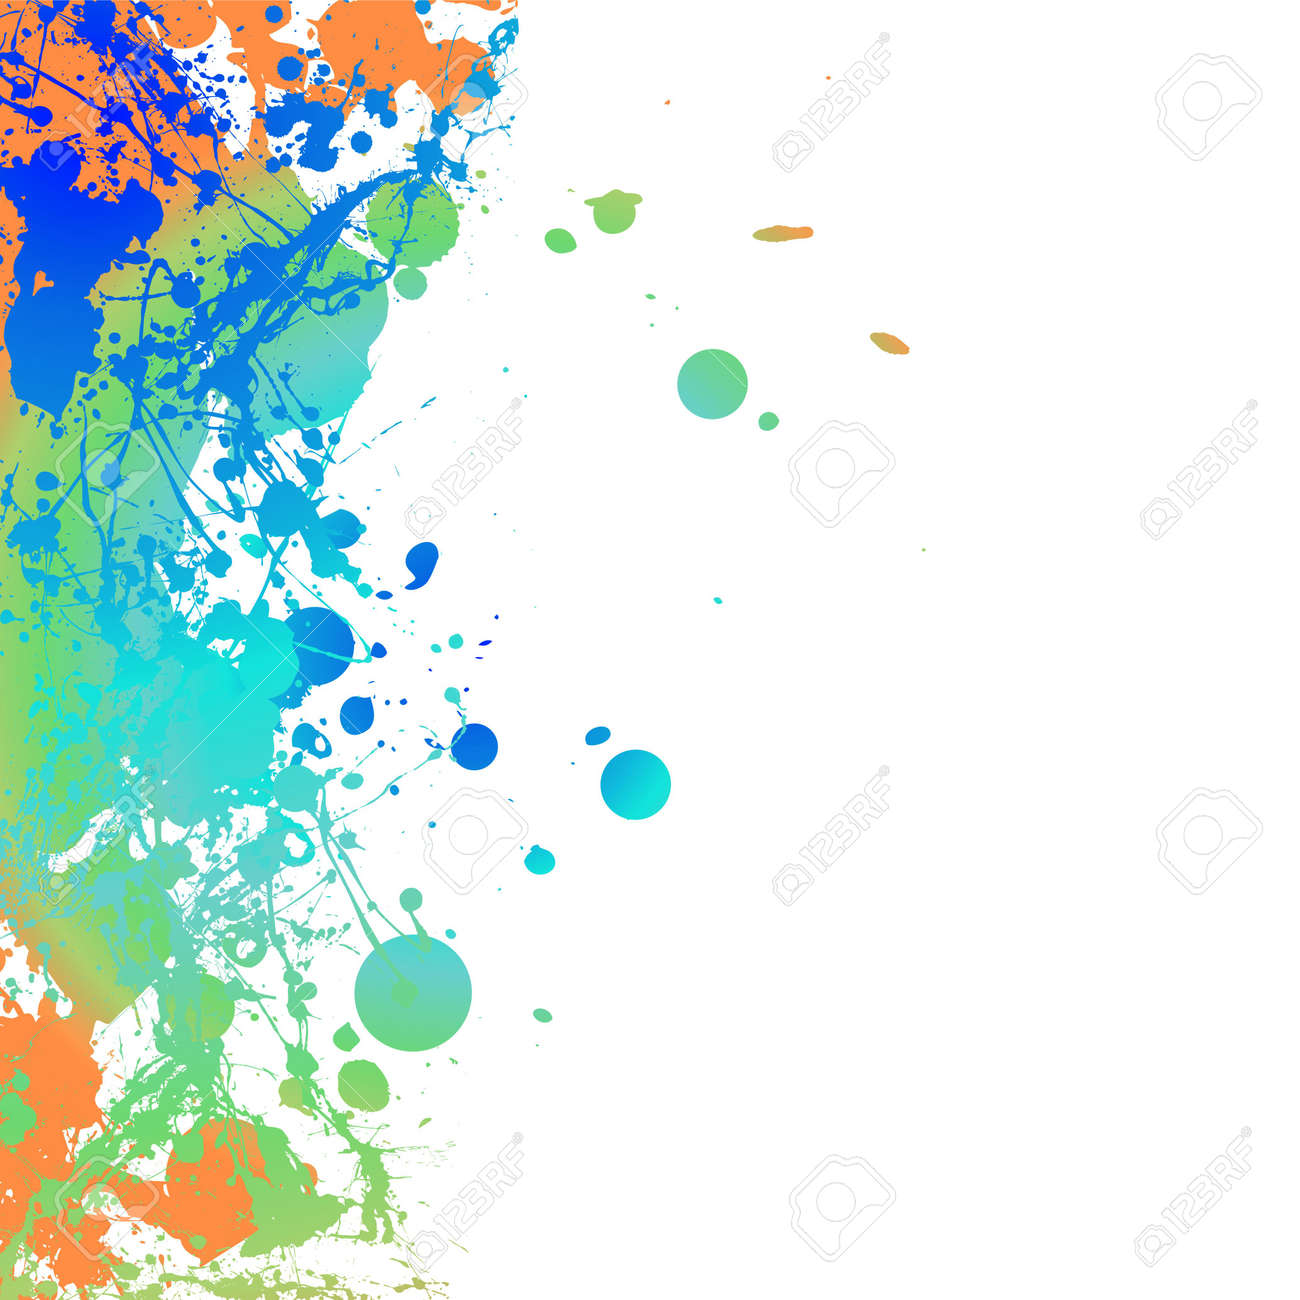 Colourful ink splat background with room to add your own copy Stock Photo - 3660718